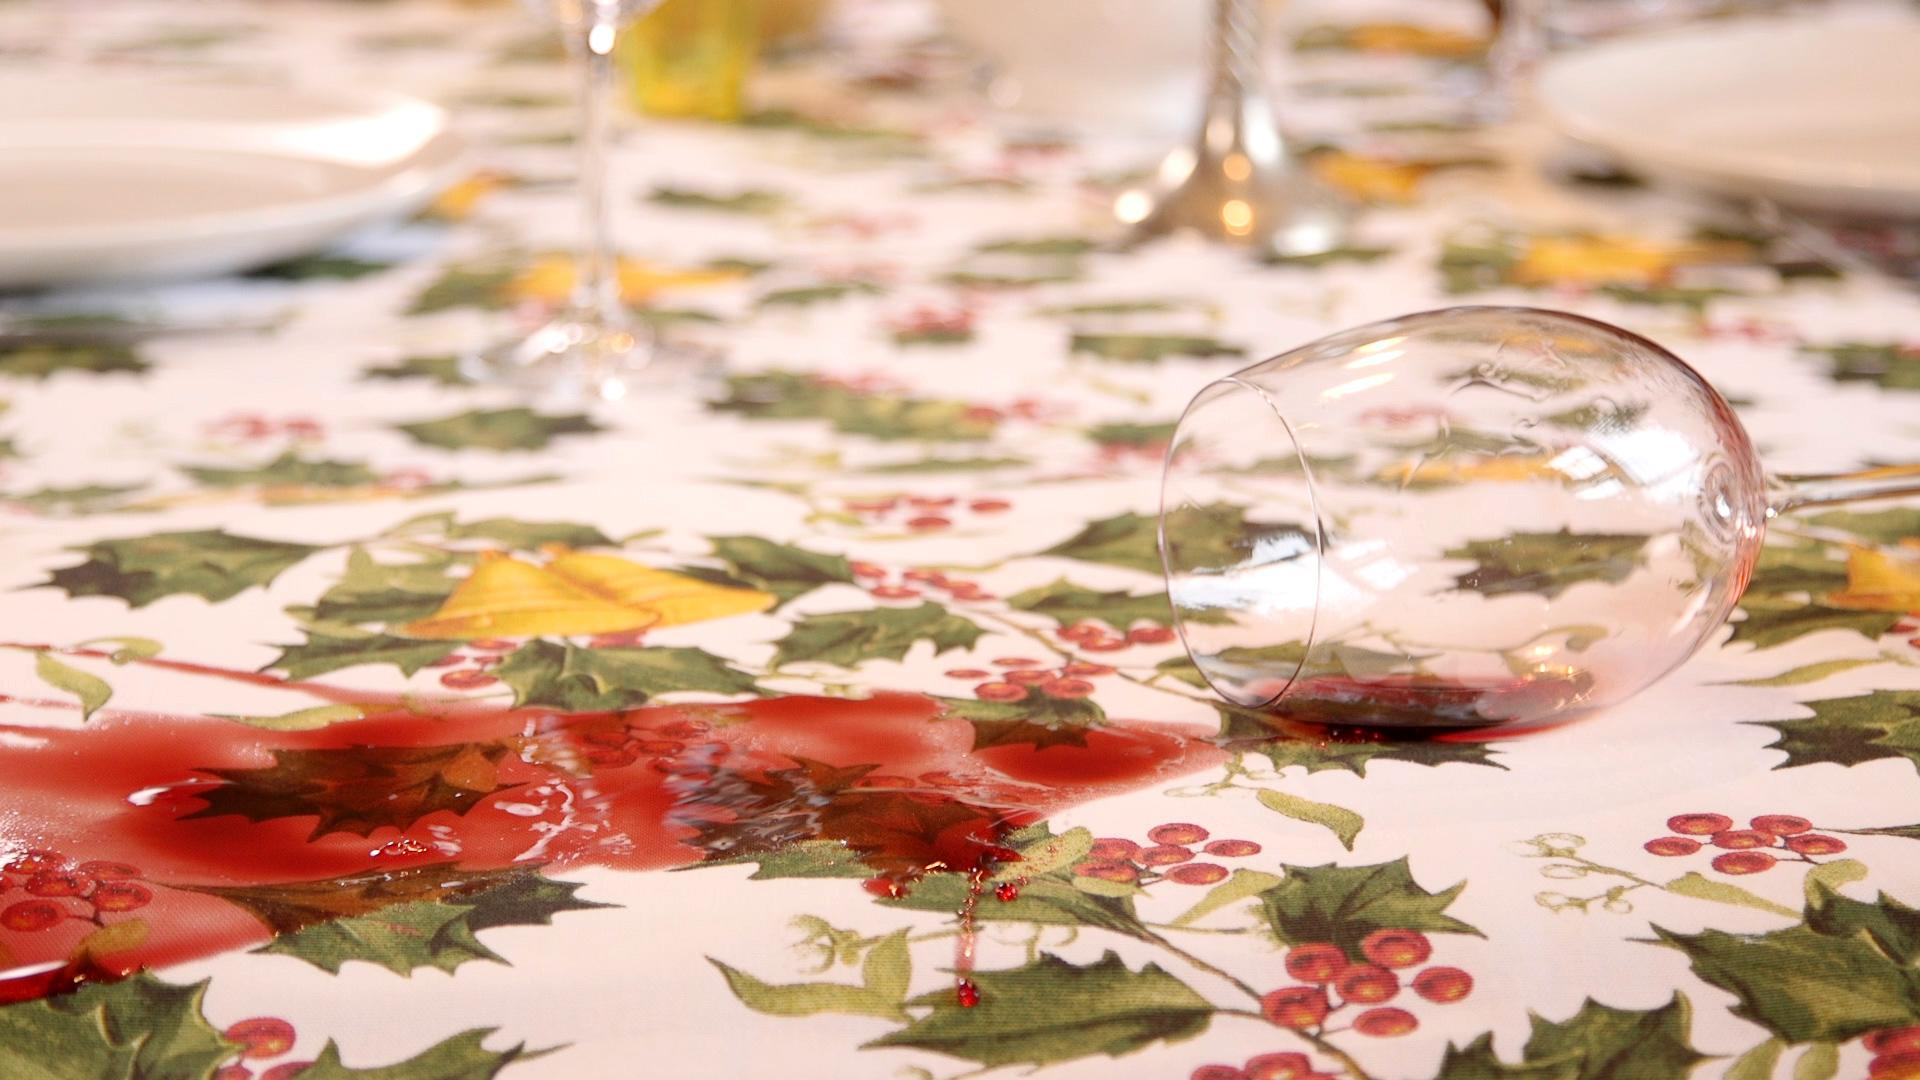 How to Clean Up Red Wine Stains and Other Messes